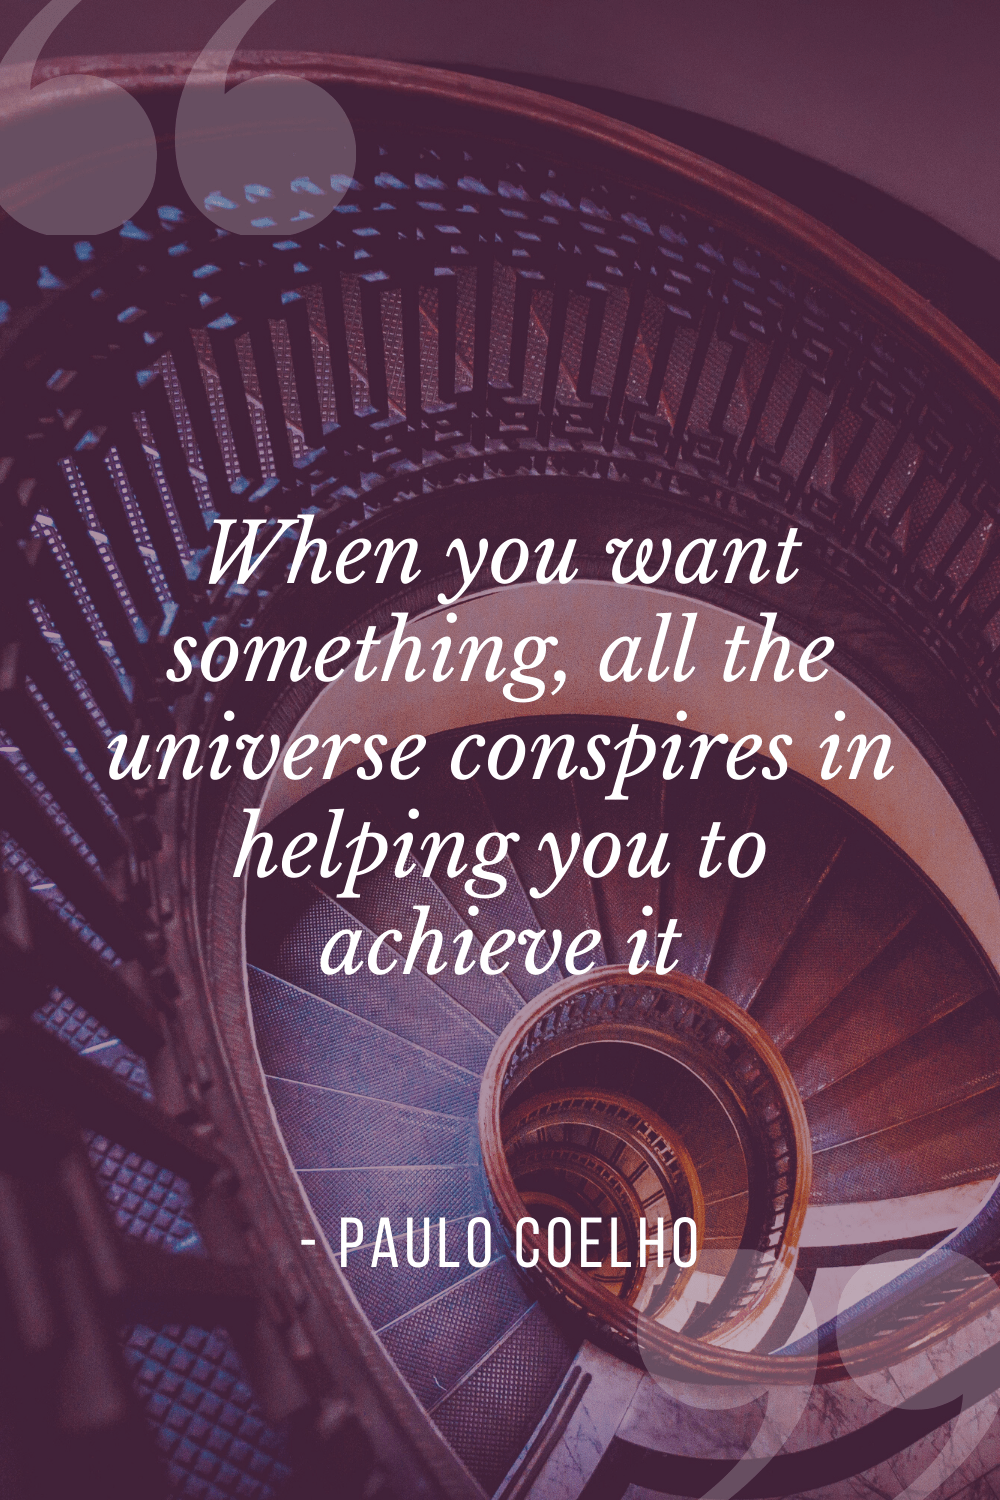 """When you want something, all the universe conspires in helping you to achieve it"", Paulo Coelho"